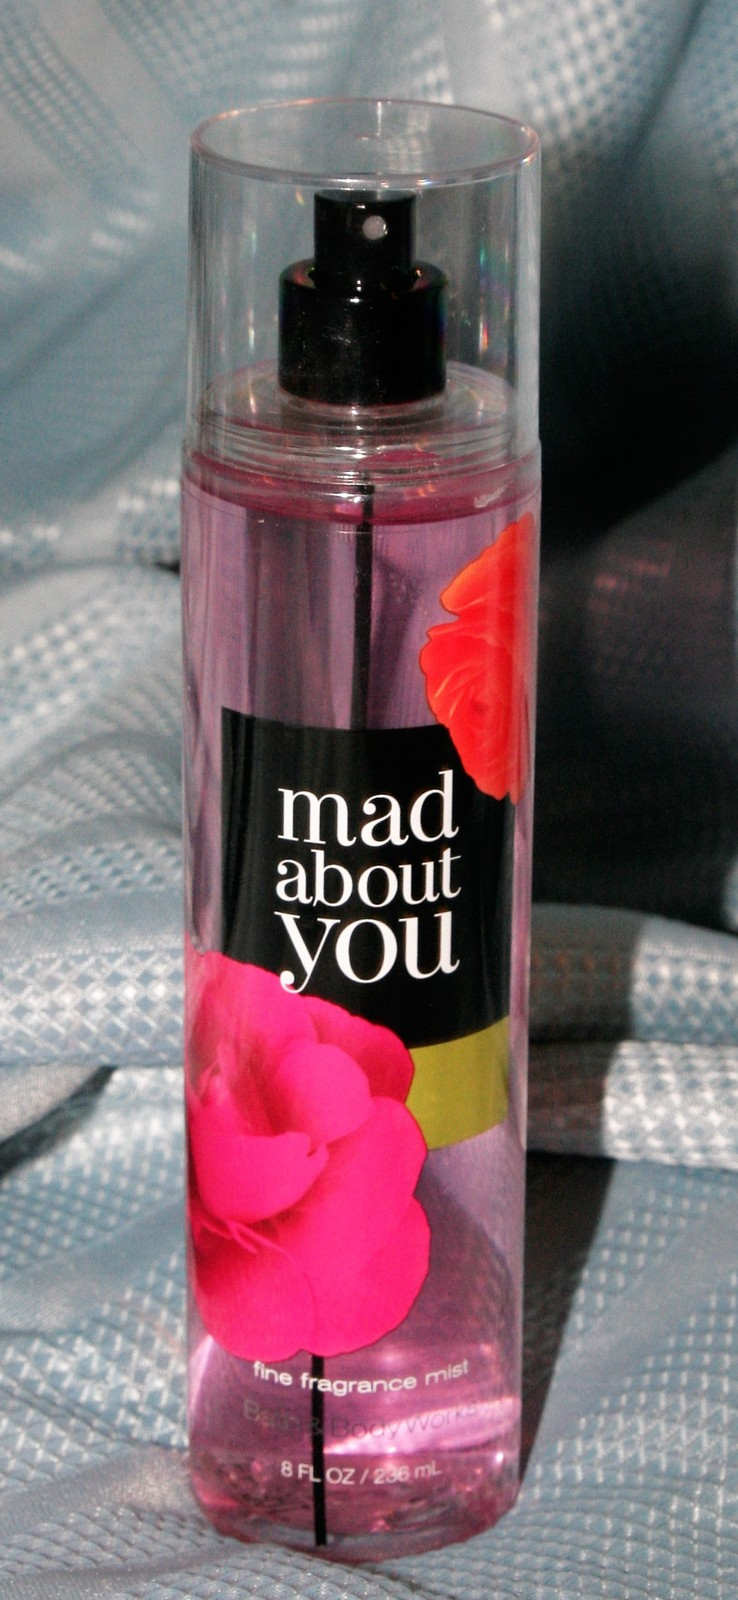 Bath and body works mad about you fine fragrance mist for Bath and body works scents best seller